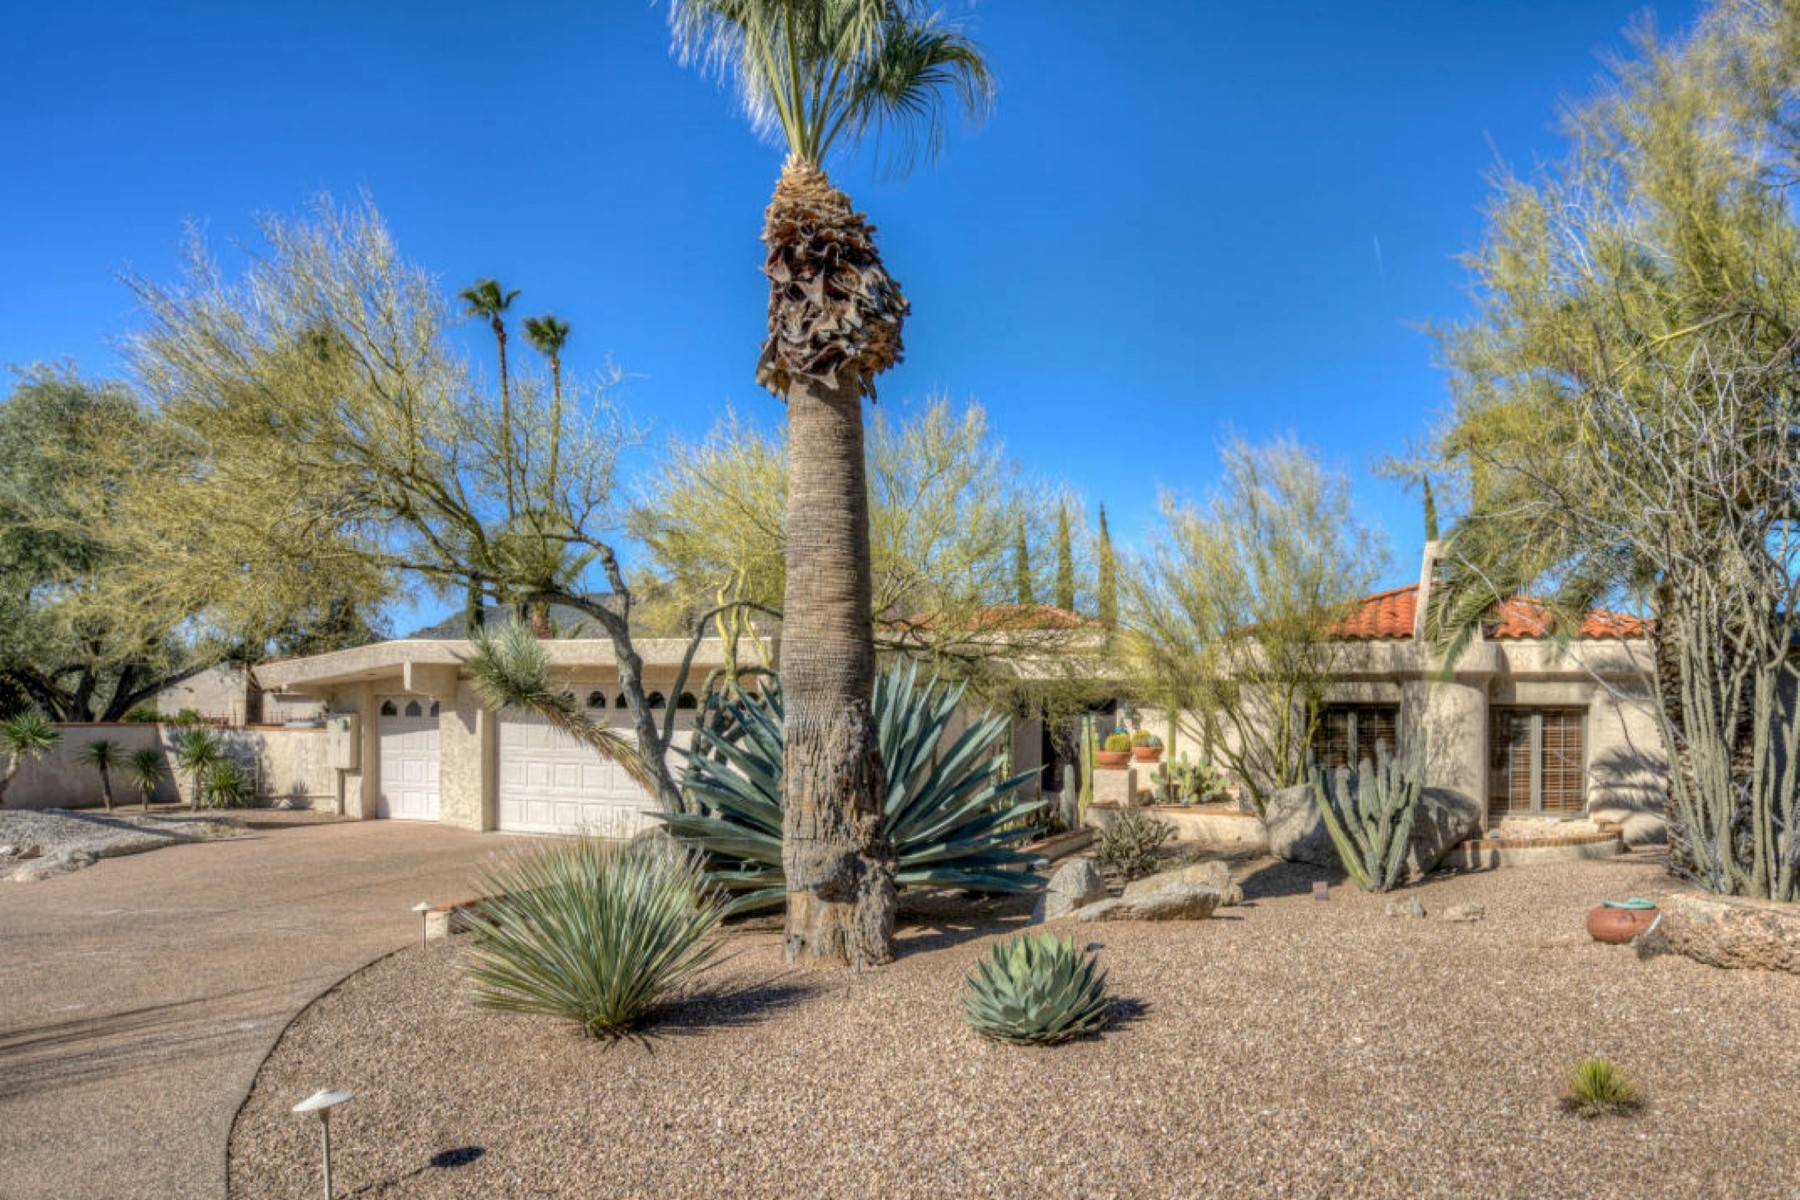 Single Family Home for Sale at Rambling Hacienda in The Boulders 1700 E Staghorn Ln Carefree, Arizona, 85377 United States